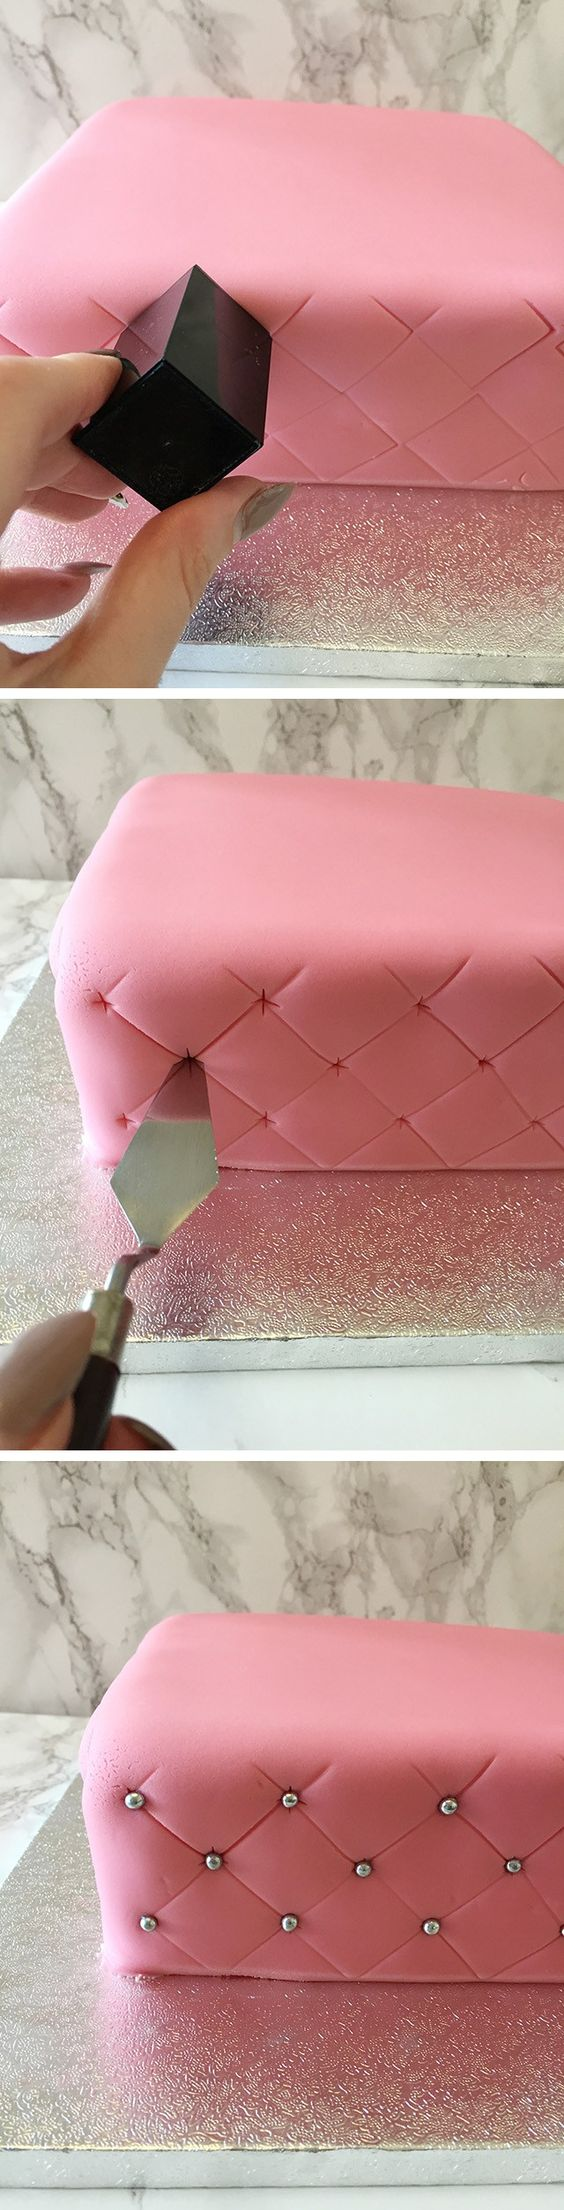 how to create a super simple quilted effect cake. No measuring, no rulers or guides just one simple hack to create a quilted cake. Pop over to the blog for full details, hints & tips